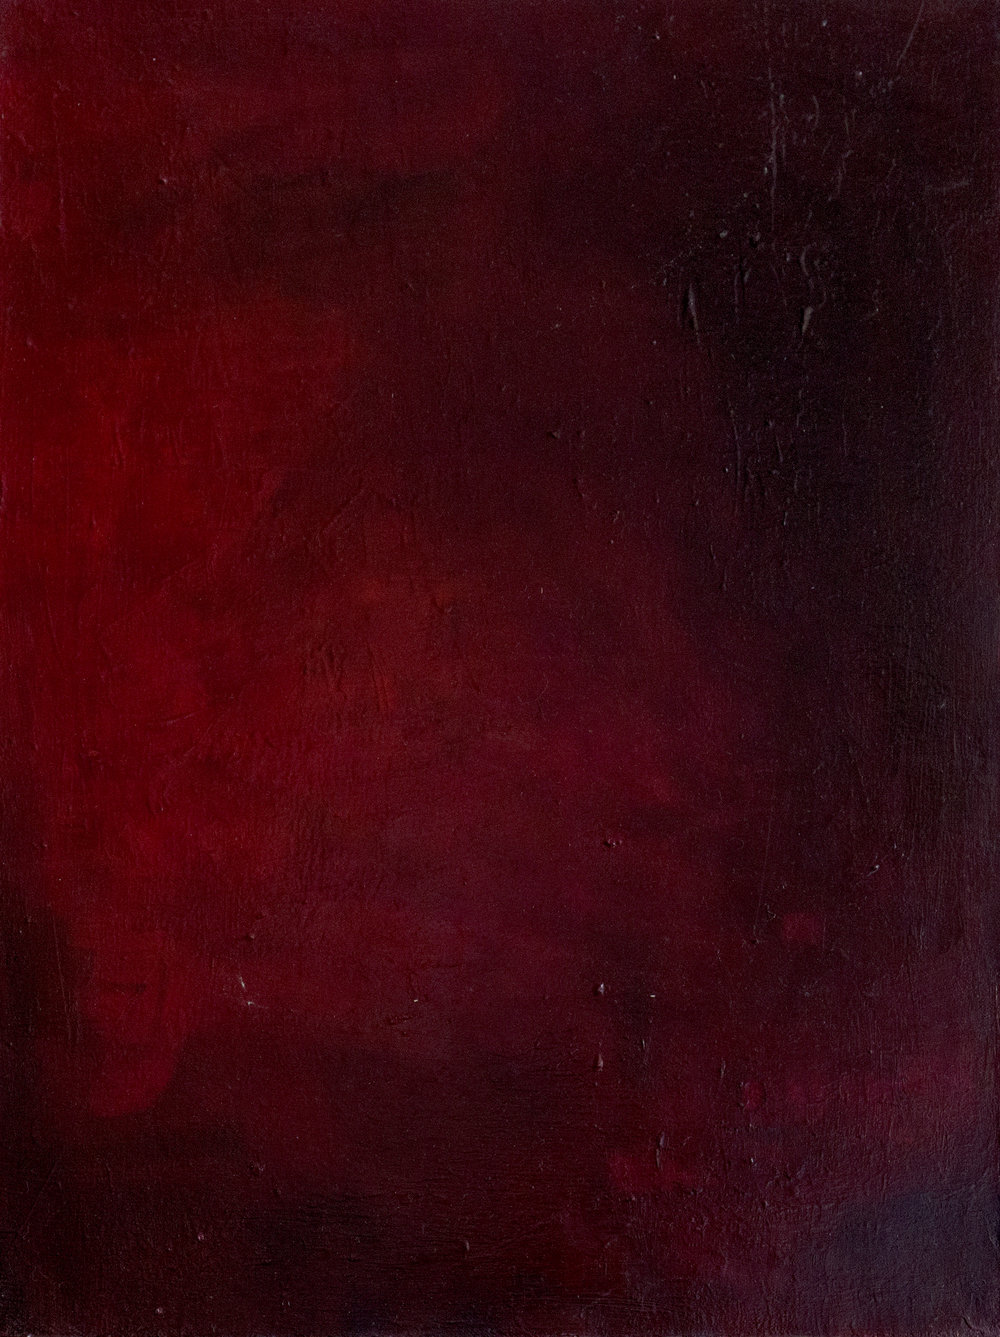 RED.2016.006_24x18 inches.jpg